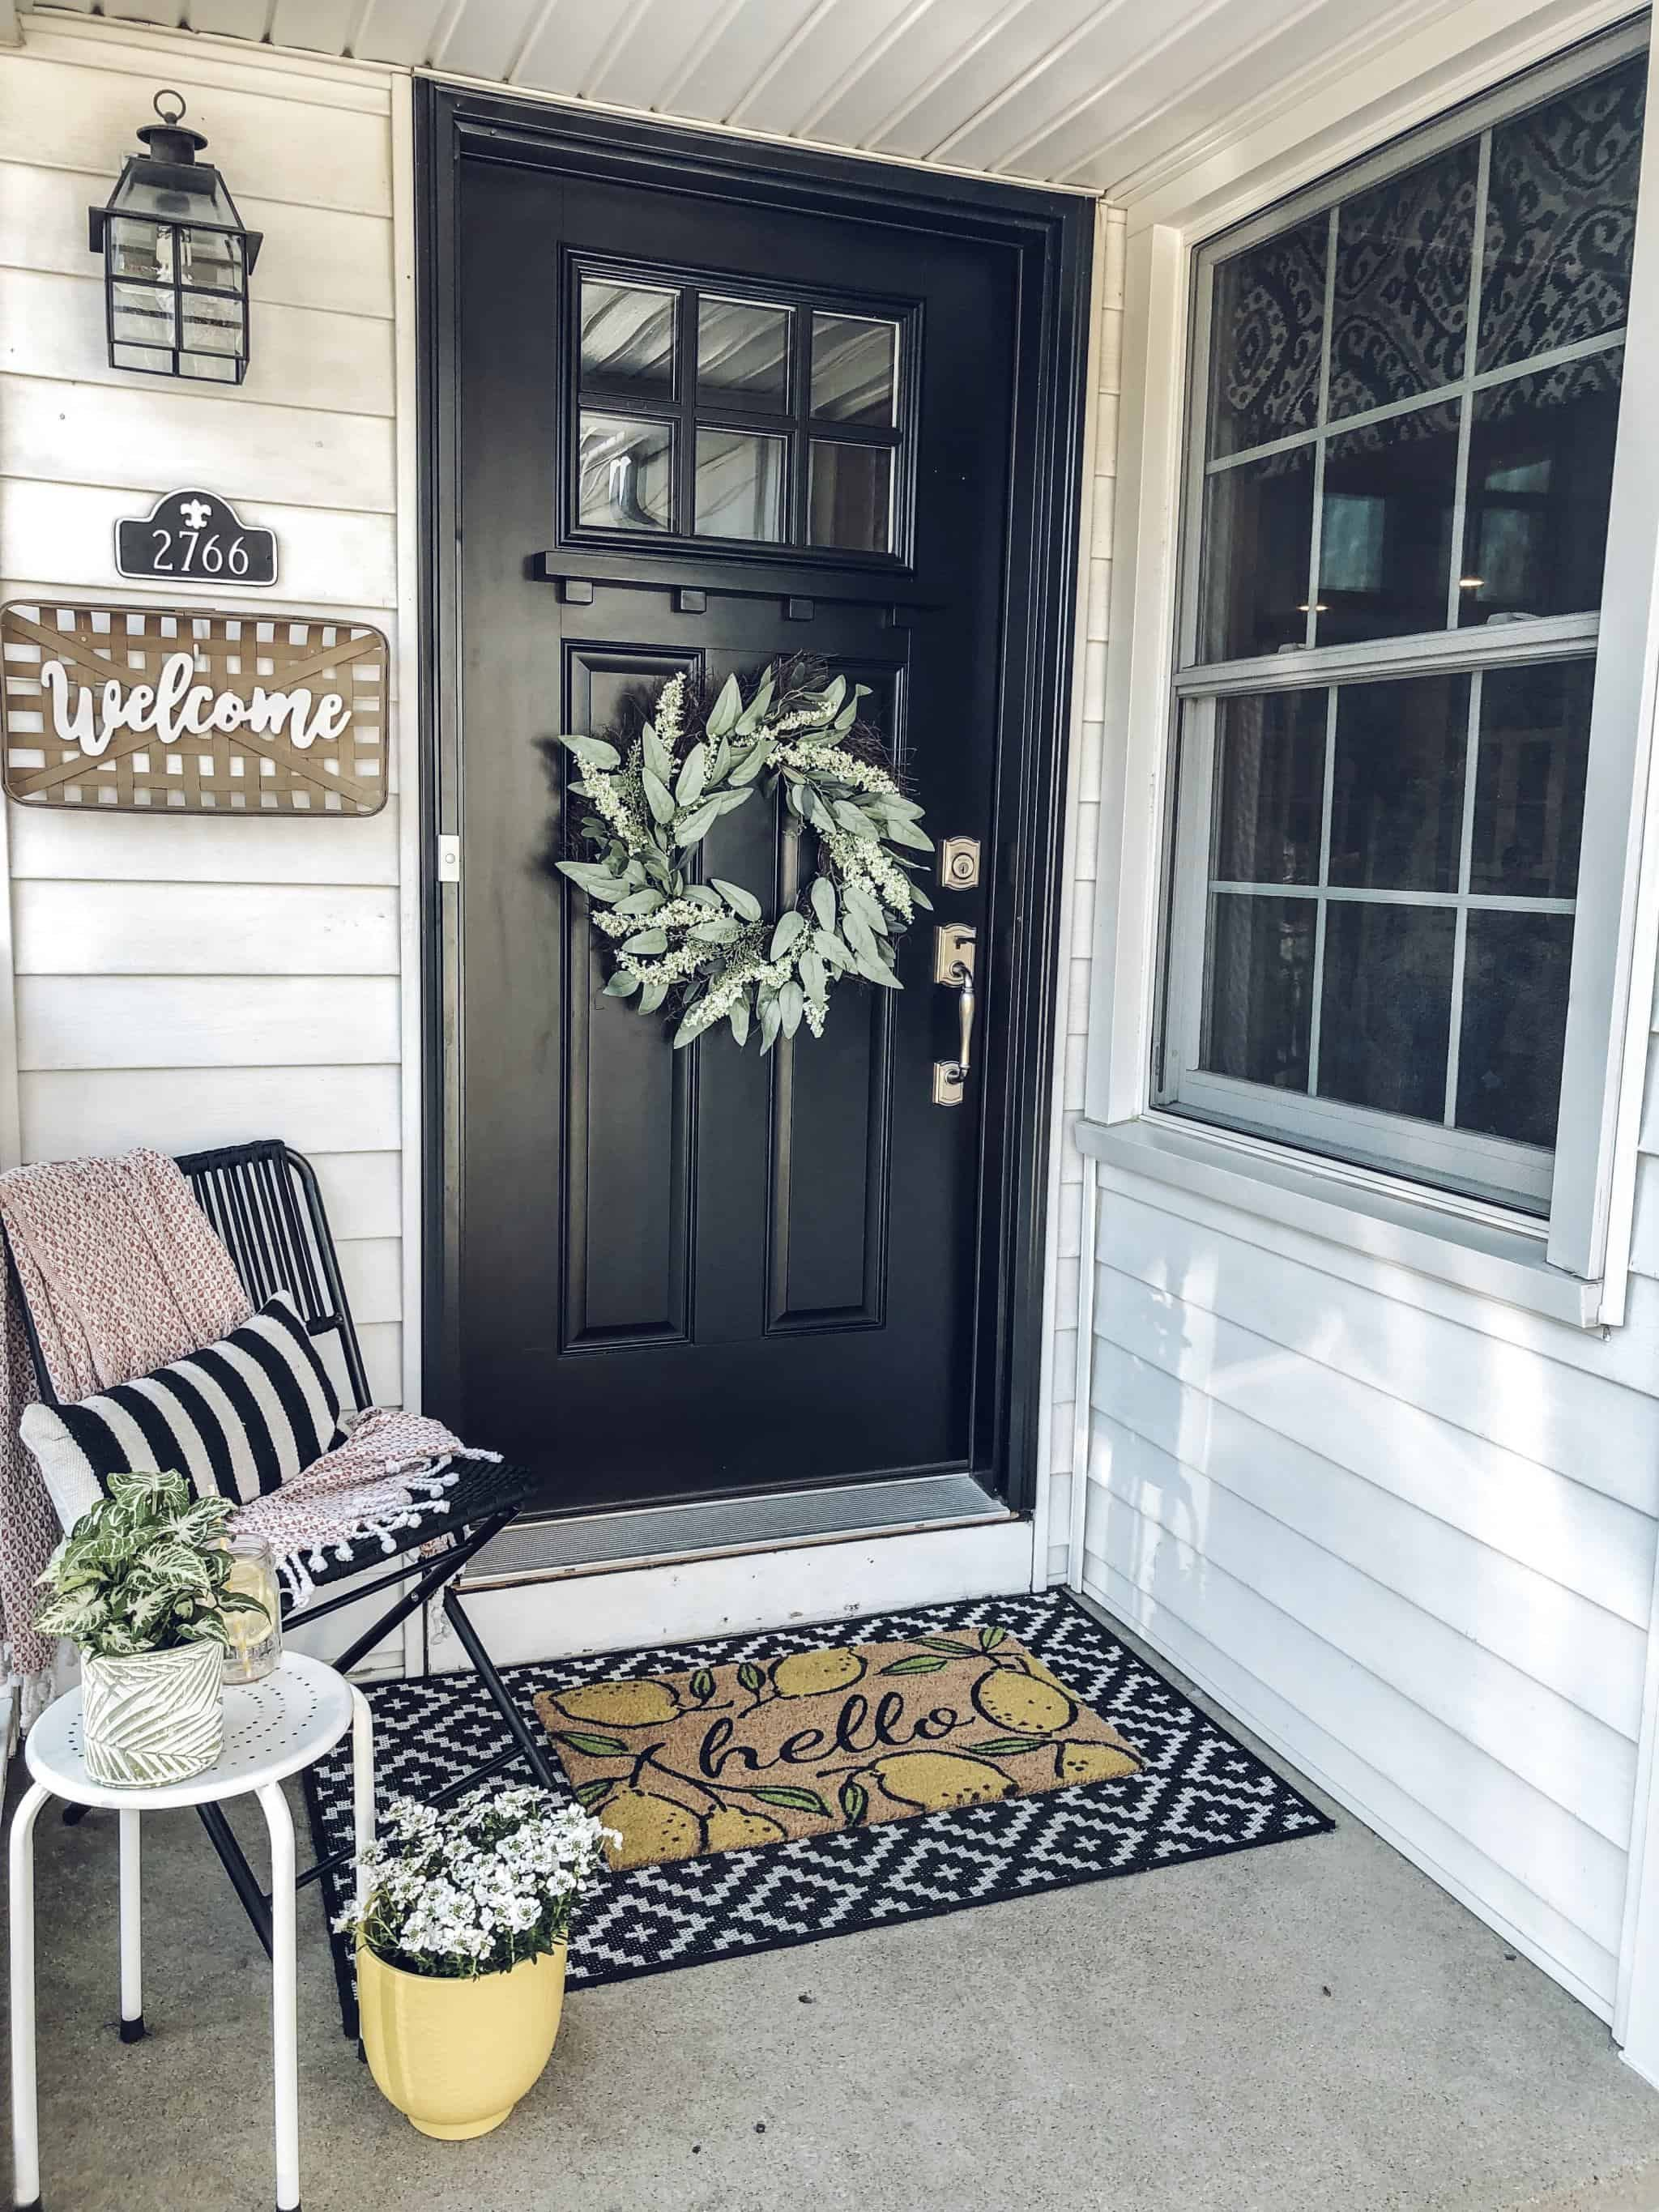 Spring Outdoor Decorating Small Front Porch Small Outdoor Living Area Outdoor Seating Gla Front Porch Makeover Front Porch Design Front Porch Decorating